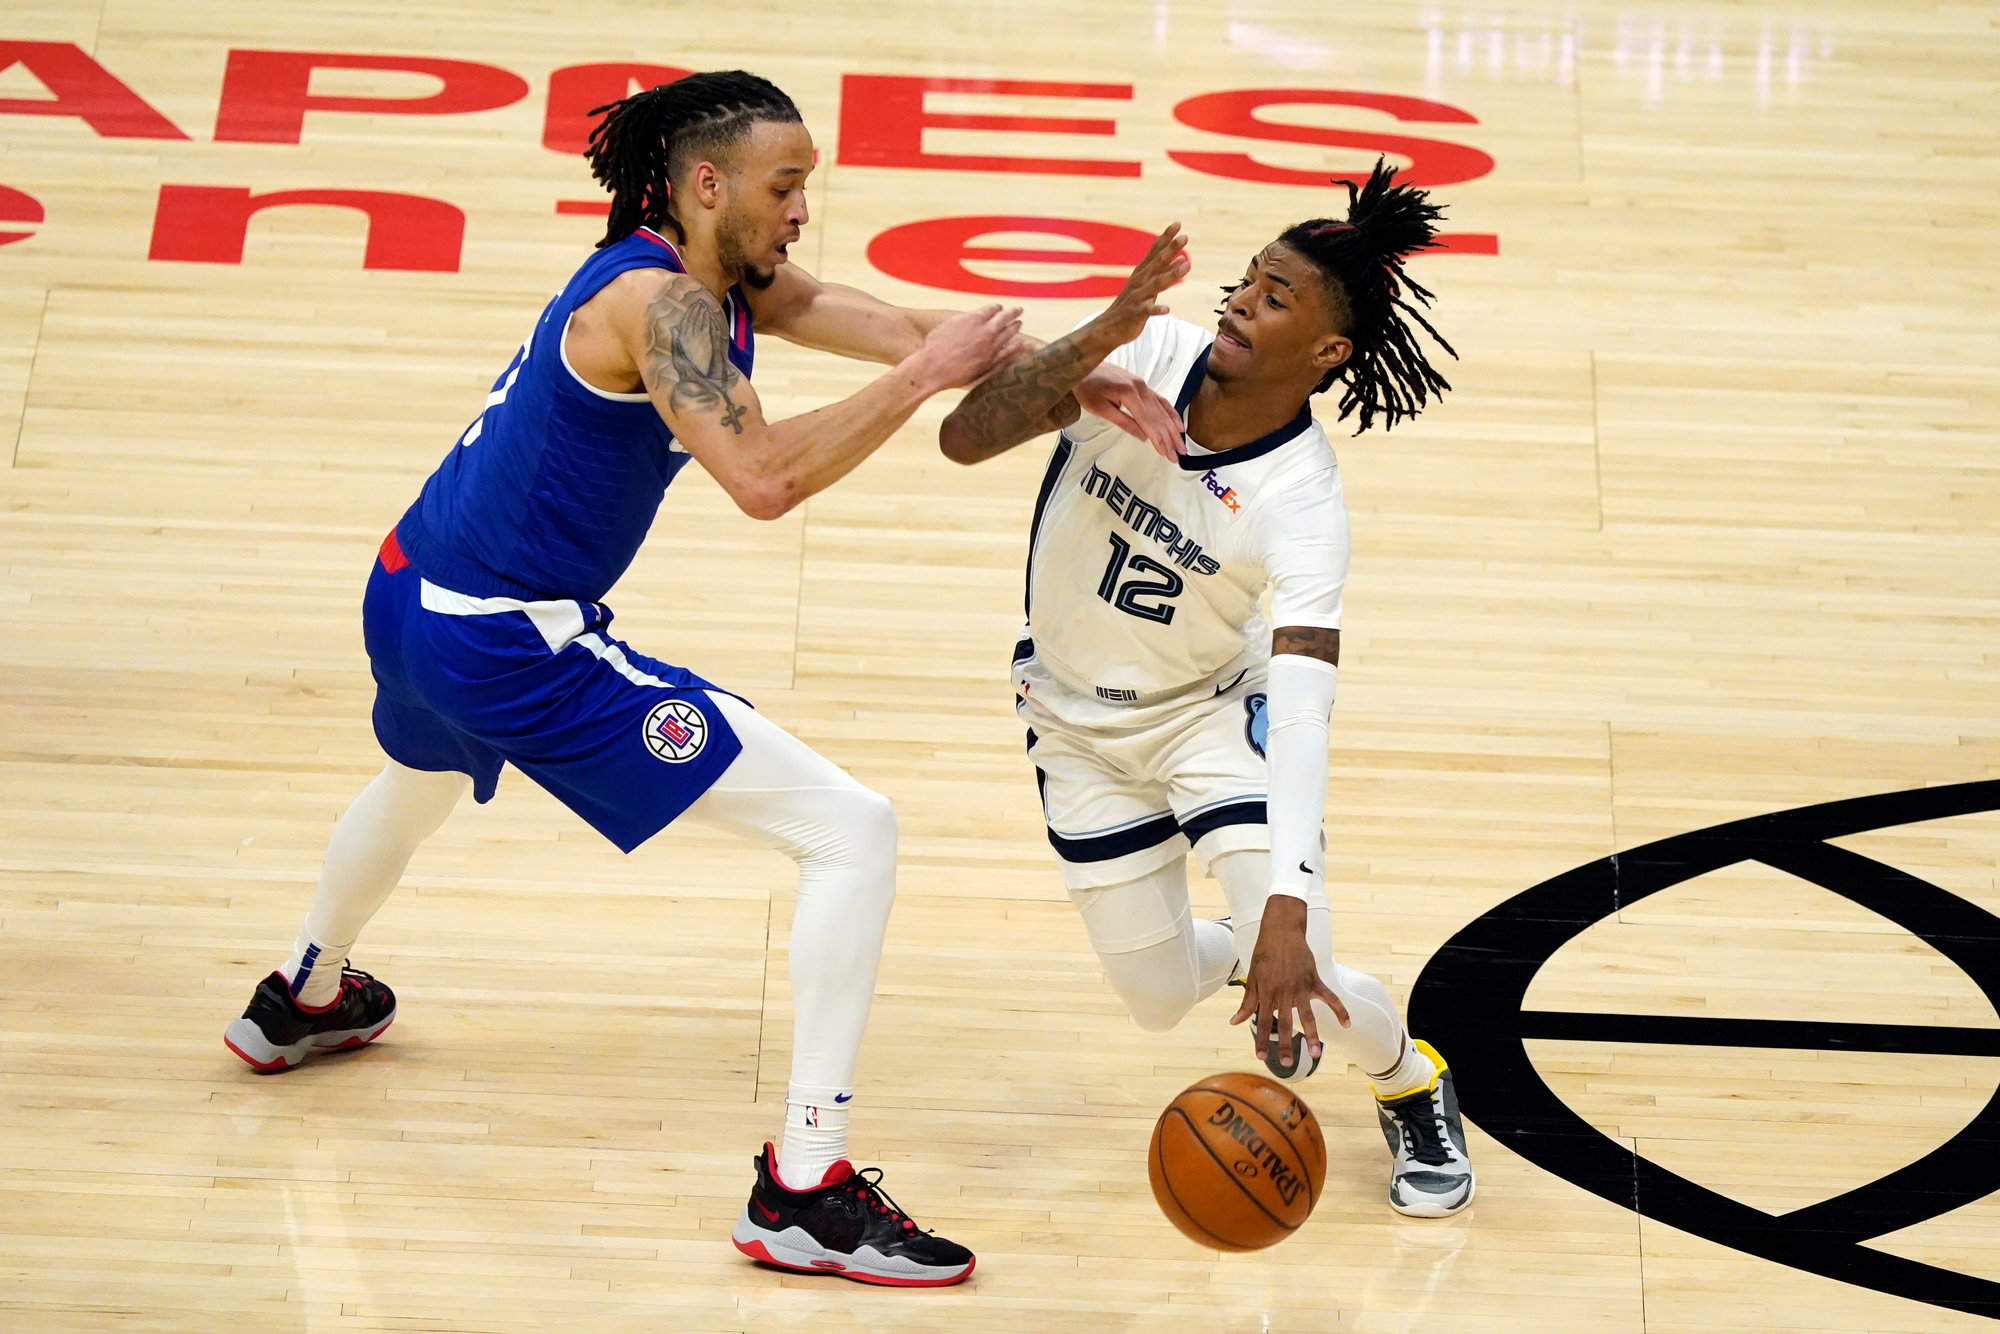 former Crestwood star and current Memphis guard Ja Morant (12) attempts to drive past Los Angeles Clippers guard Amir Coffey during the Grizzlies' 117-105 loss on Wednesday in Los Angeles.